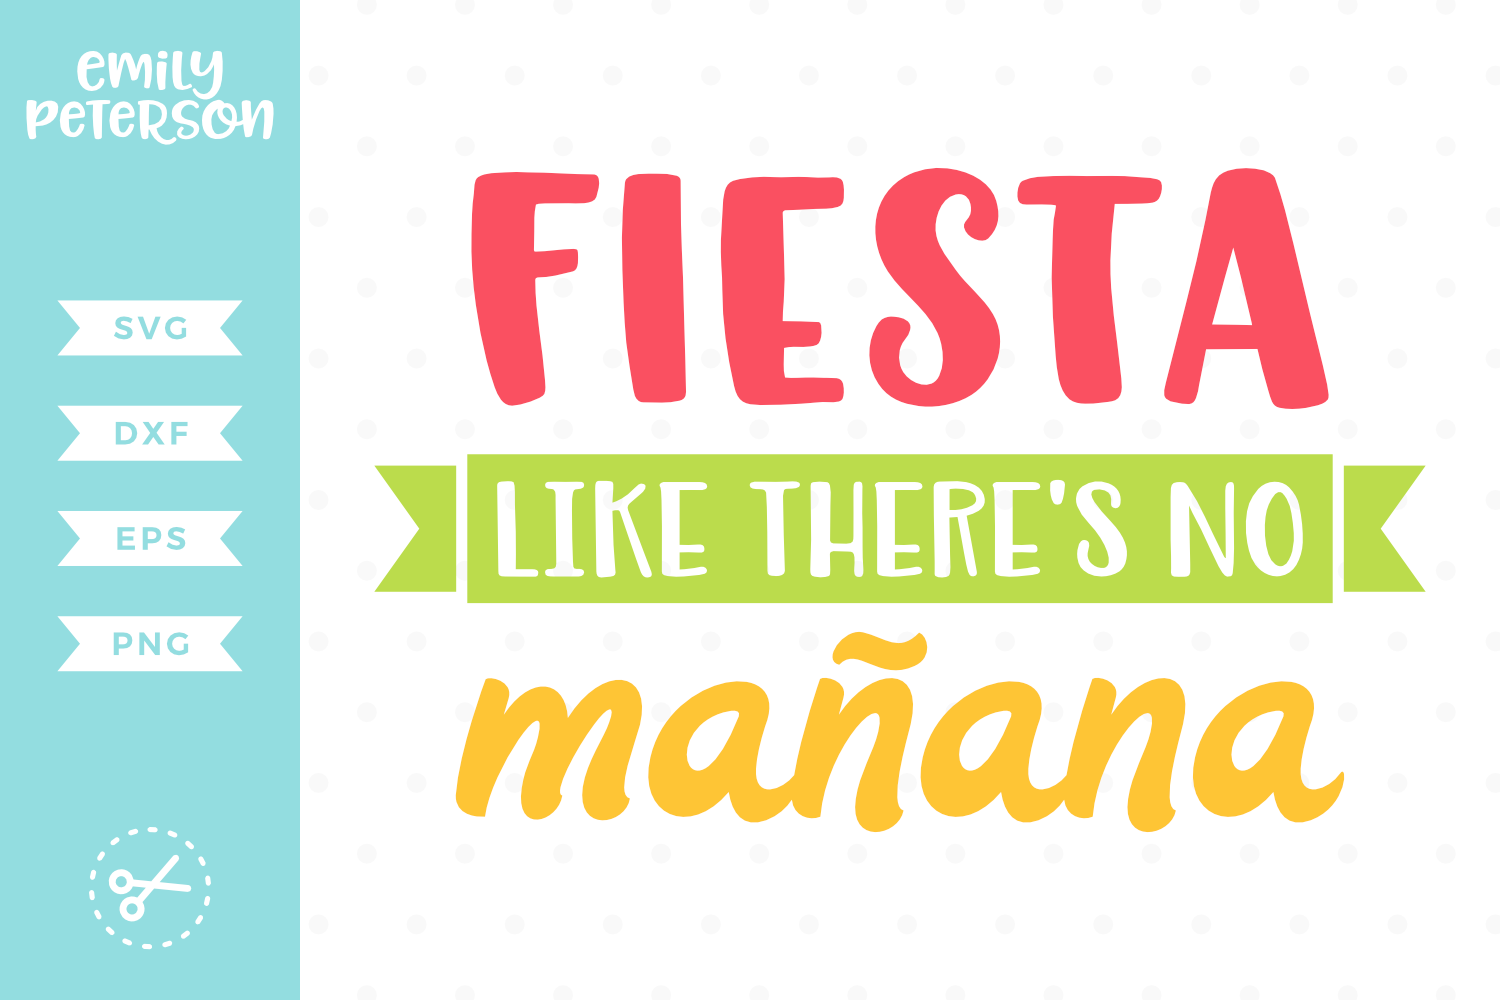 Fiesta Like There's No Manana SVG DXF EPS PNG example image 1